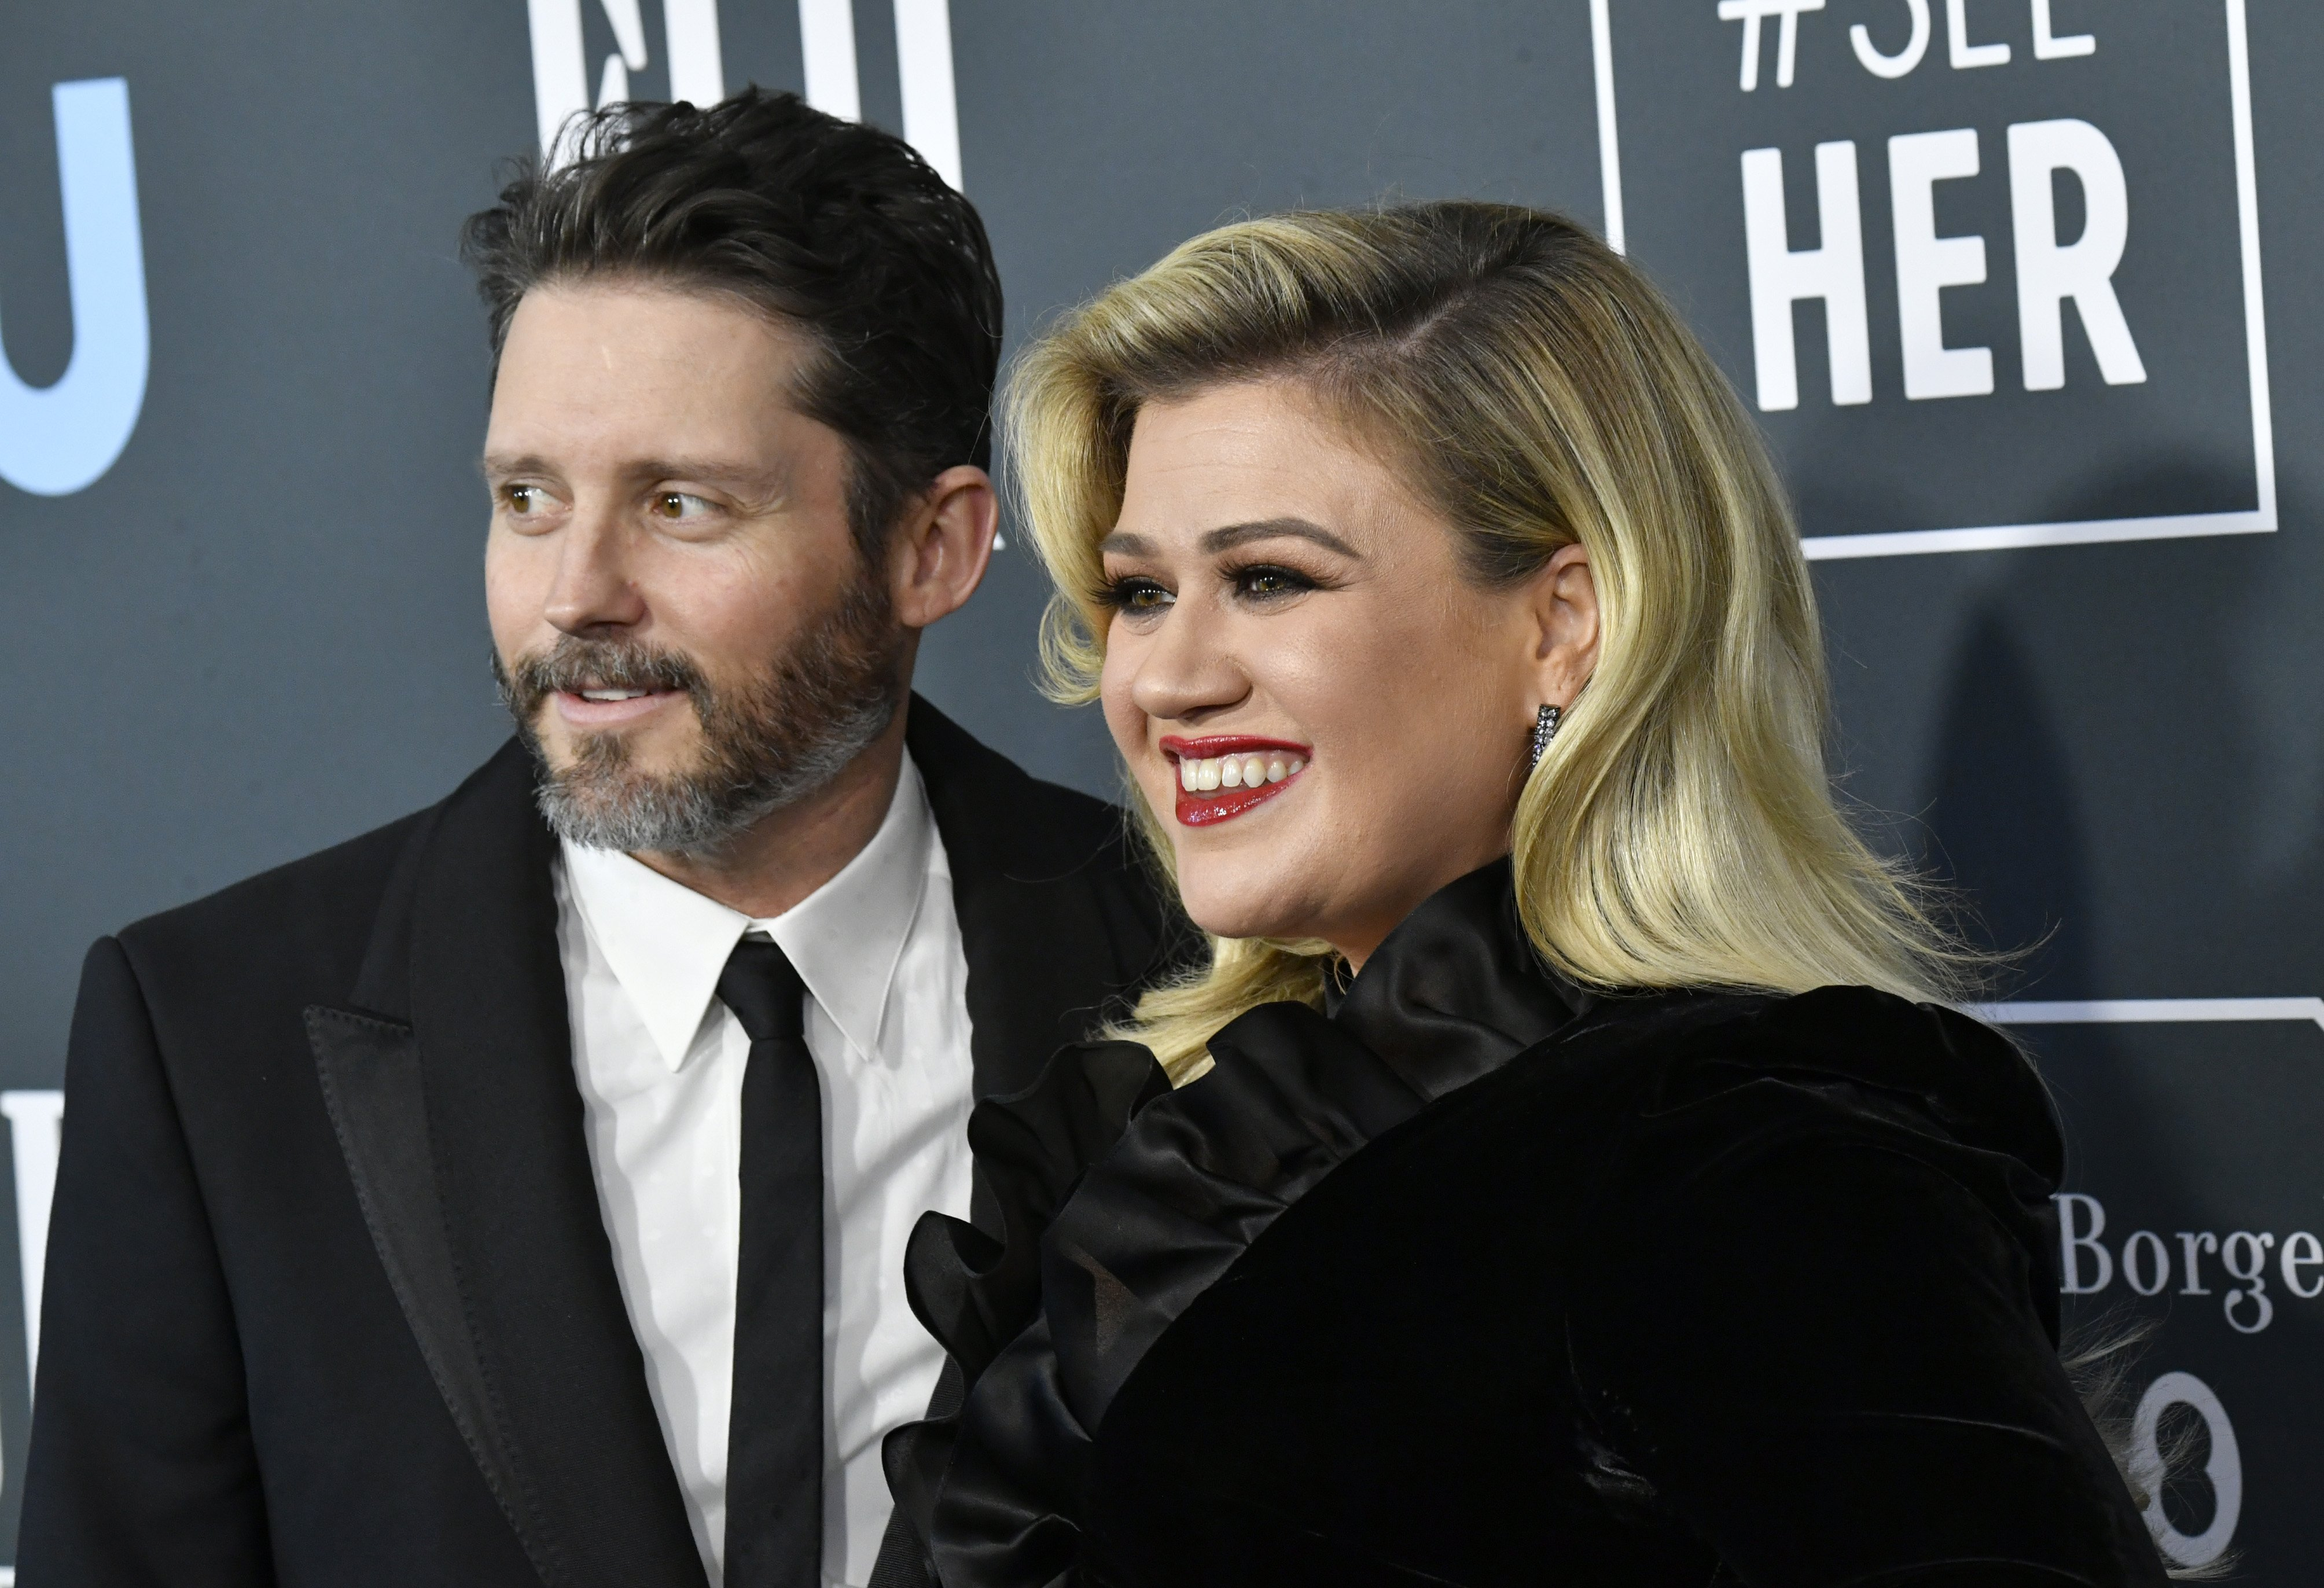 Brandon Blackstock and Kelly Clarkson attend the 25th Annual Critics' Choice Awards on January 12, 2020 | Photo: Getty Images